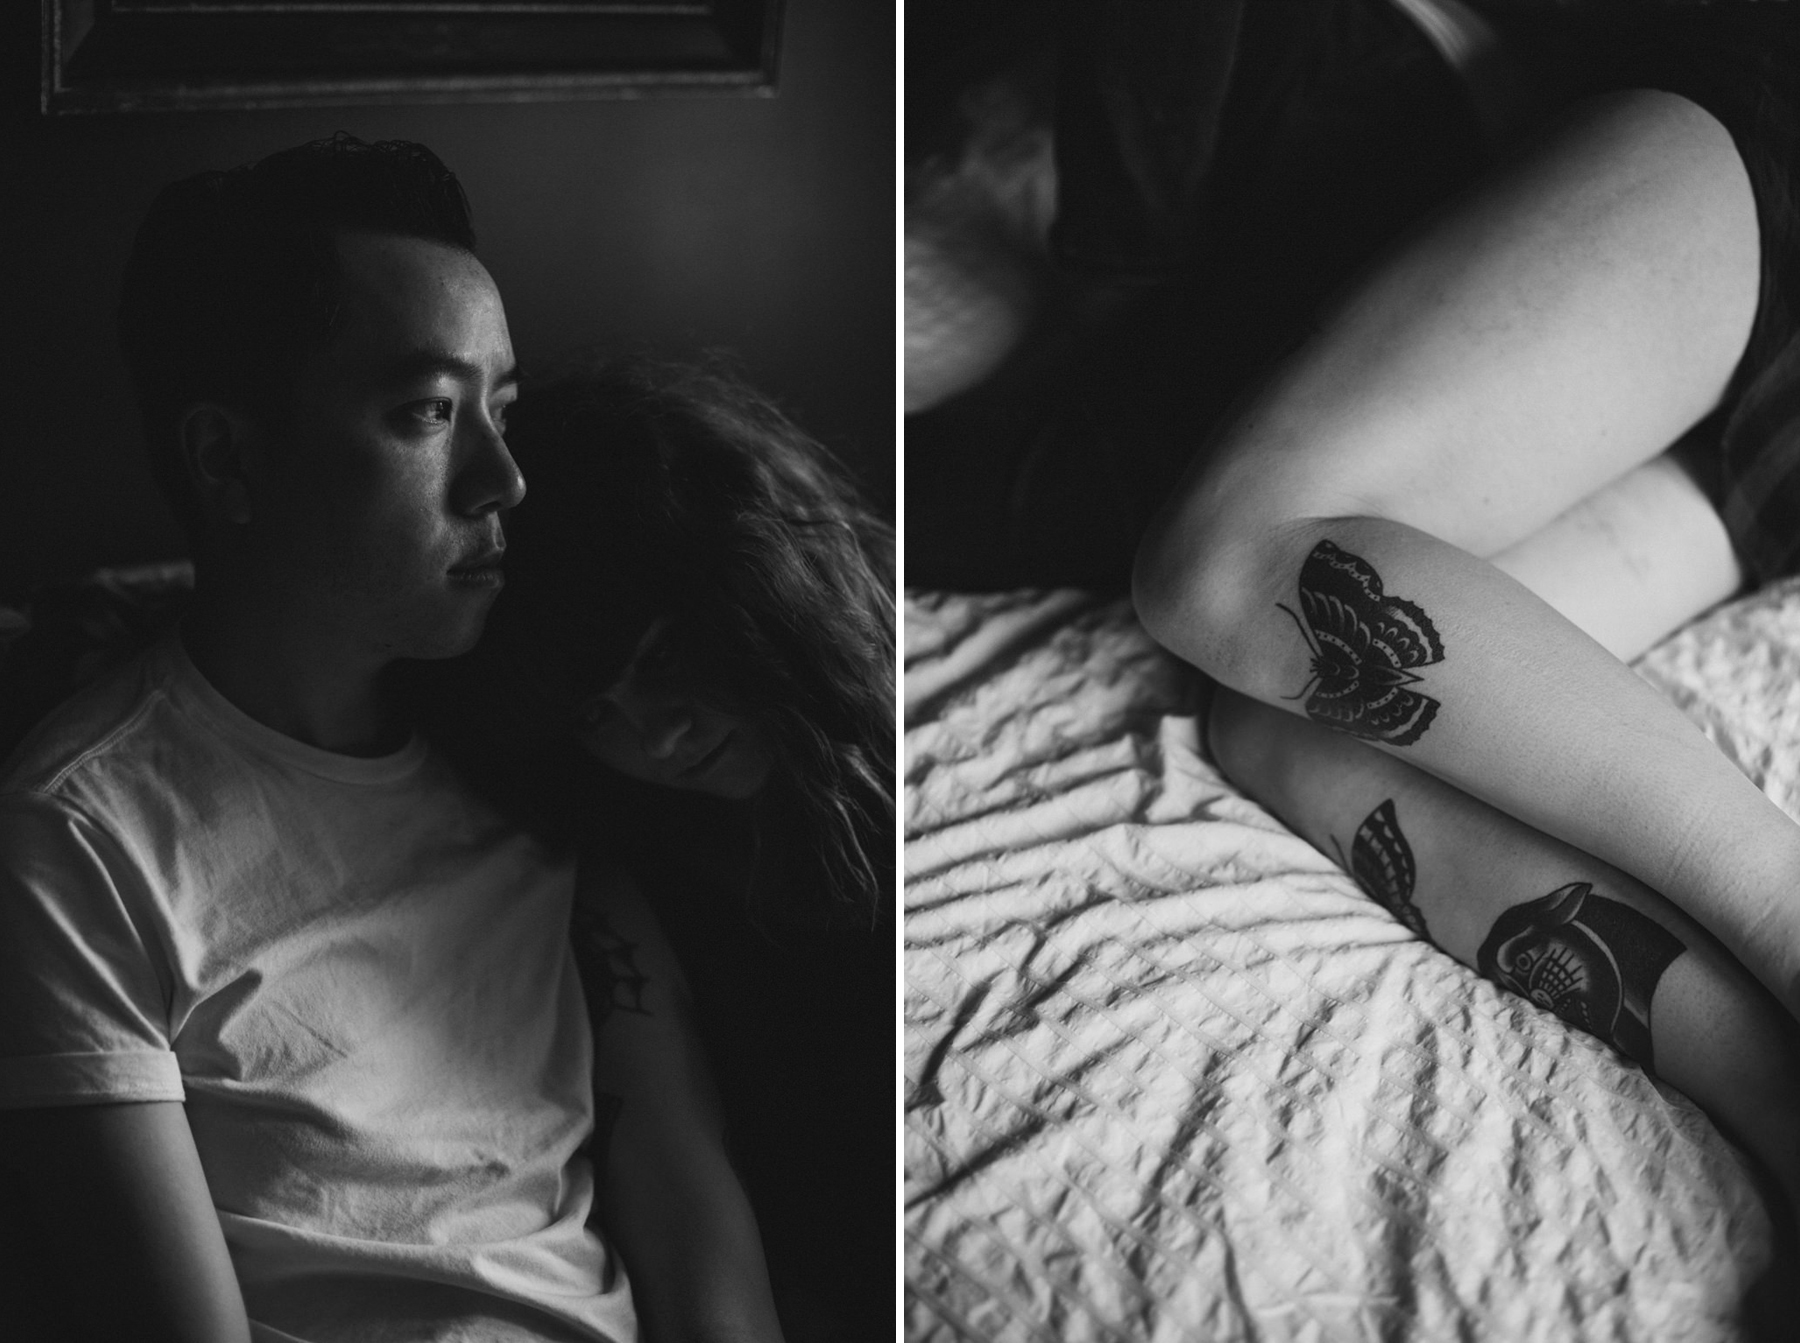 Daring Wanderer Photography - Daring Wanderer - Toronto portrait photographer - intimate - couples session - intimate couples session - bedroom shoot - love - lovers shoot - tattooed couple - tattoos - hipster couple